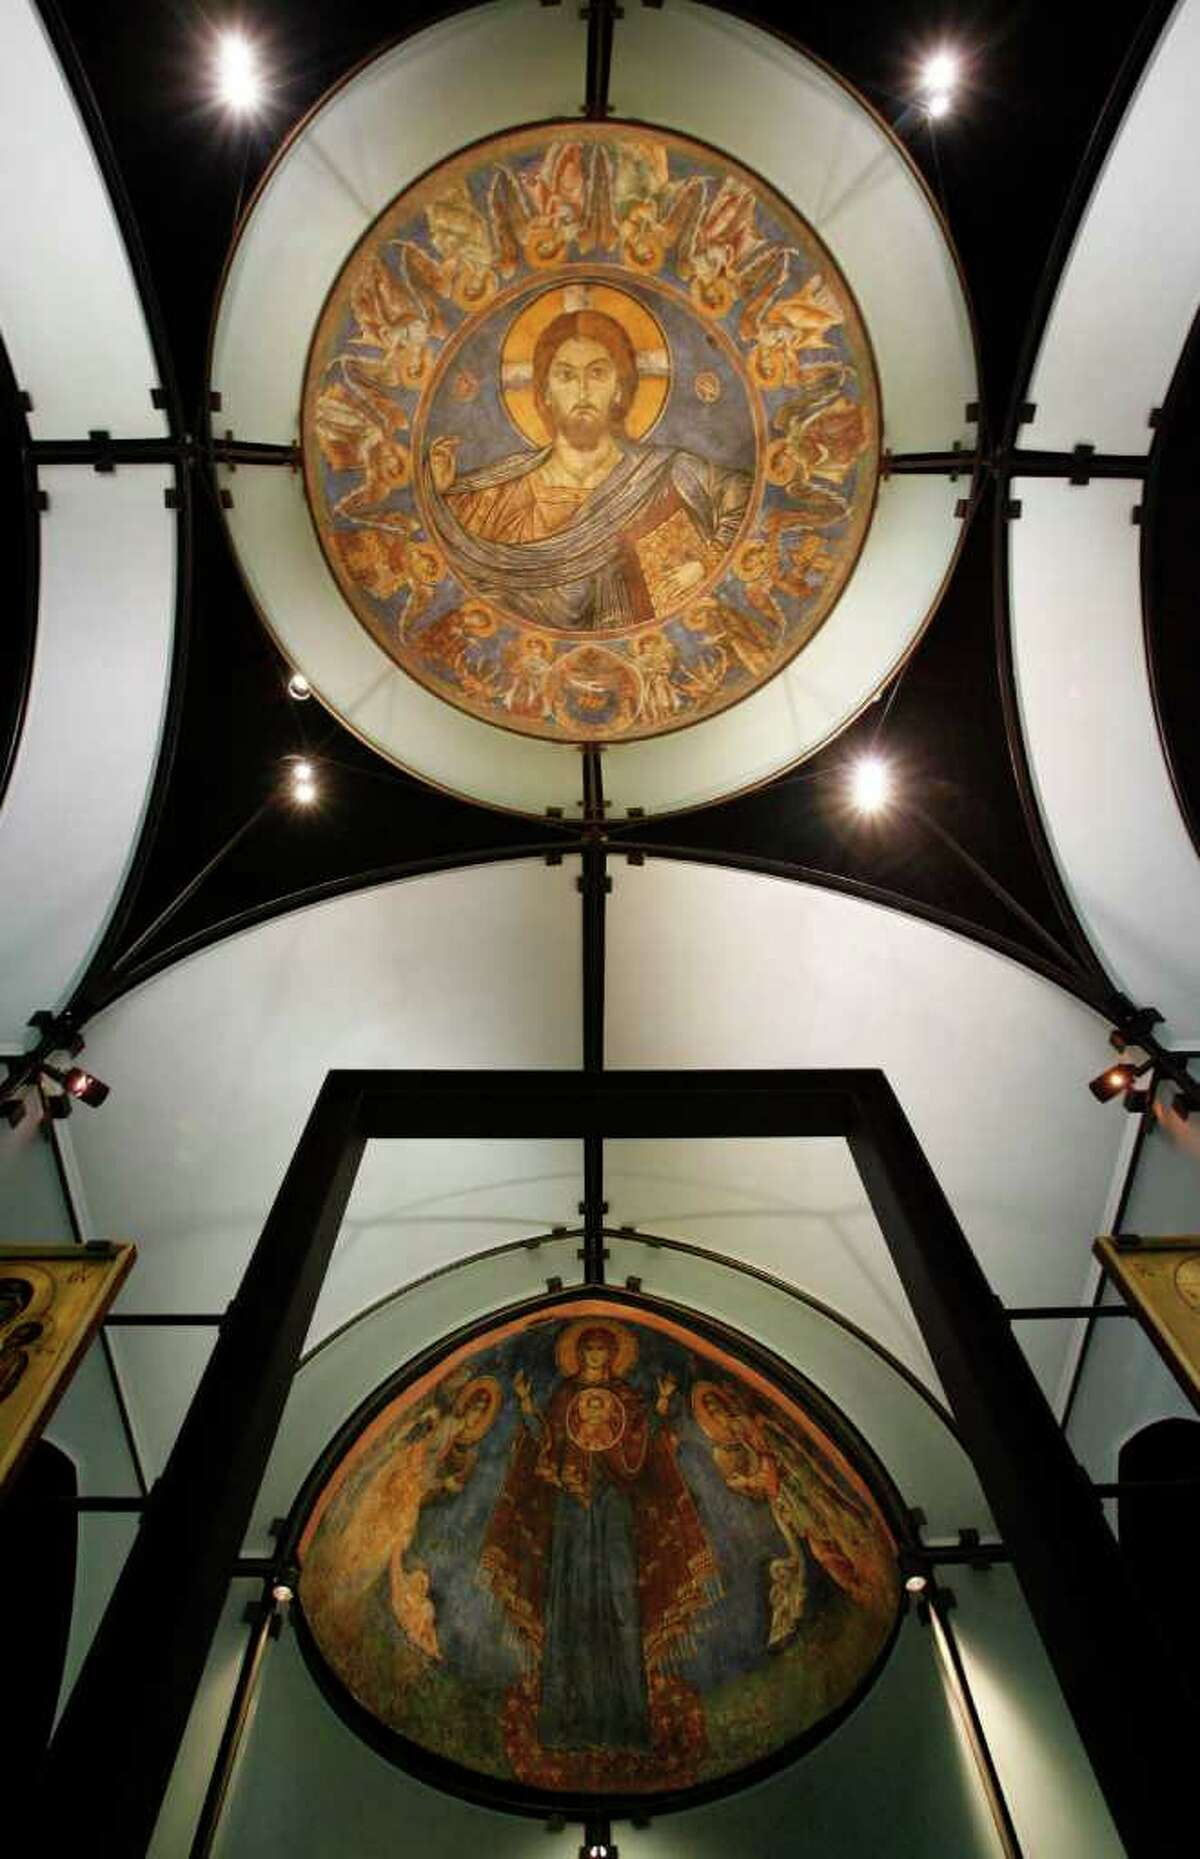 Photo of multi-colored frescos on the dome and sides of the glass walls of the Byzantine Chapel, Thursday, Sept. 27, 2007. The Chapel is the only repository in the United States with intact Byzantine frescoes in the entire western hemisphere. These masterworks from the 13th century -- a dome and an apse -- were ripped and stolen out of a chapel near Lysi in Cyprus in the 1980's, cut into pieces, and smuggled off the island by thieves prepared to sell them piece by piece. The fresco fragments were rescued from the thieves by The Menil Foundation with the knowledge and approval of the Church of Cyprus, the rightful owner of the frescoes. ( Karen Warren / Chronicle)